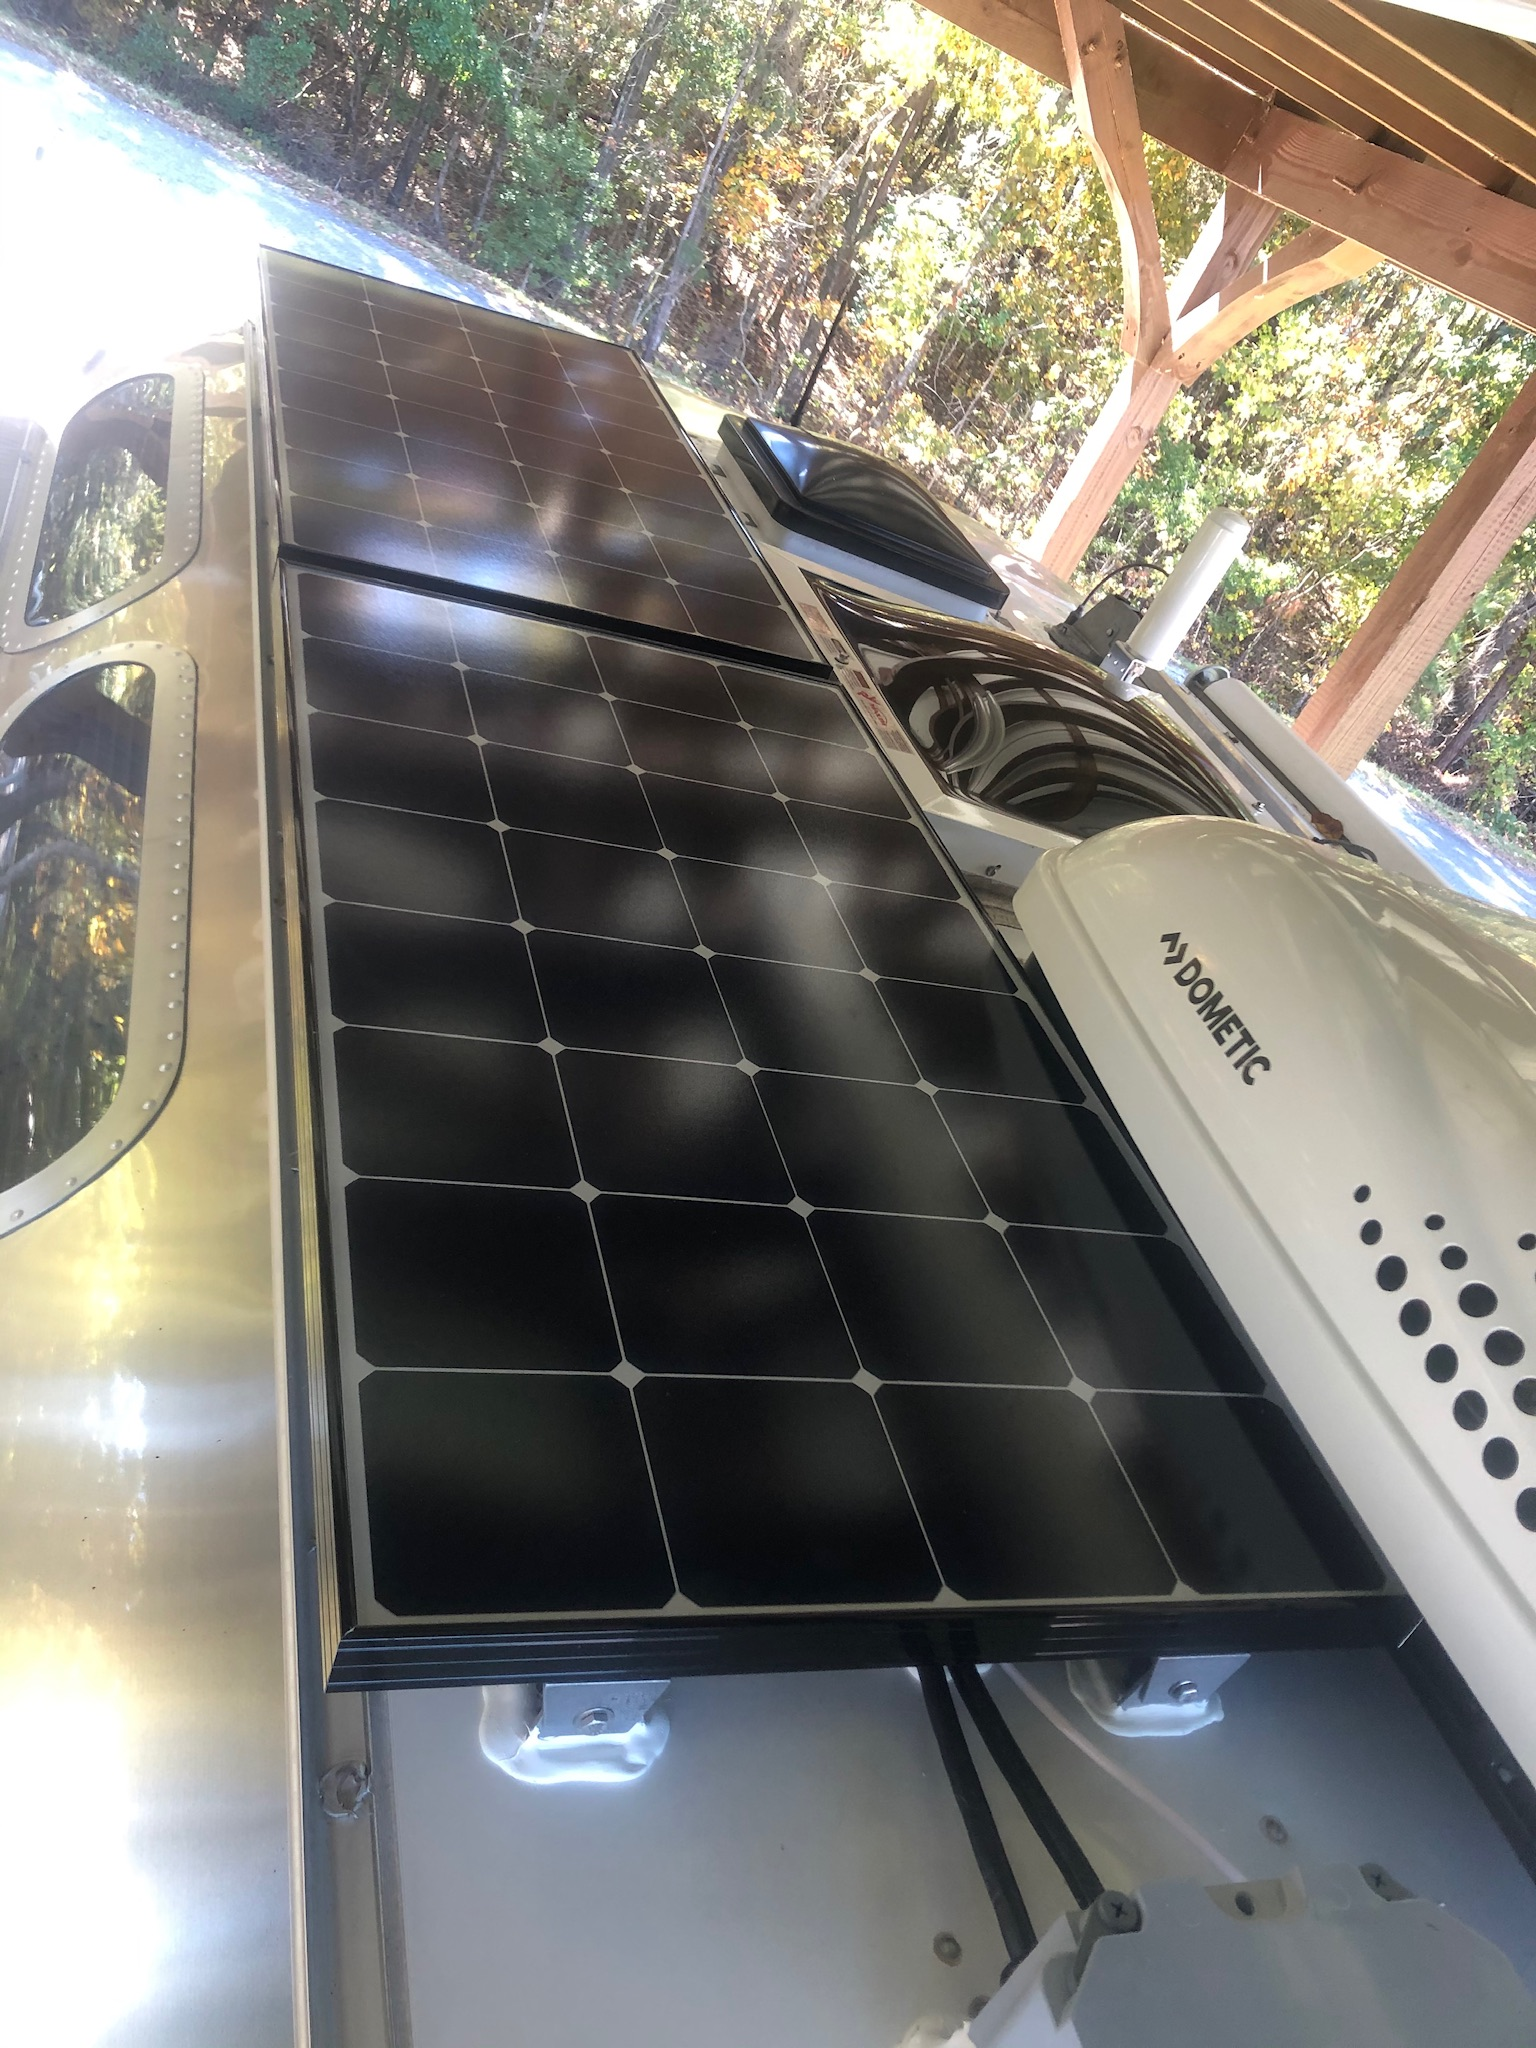 Solar panels provide a way to keep your RV batteries charged.